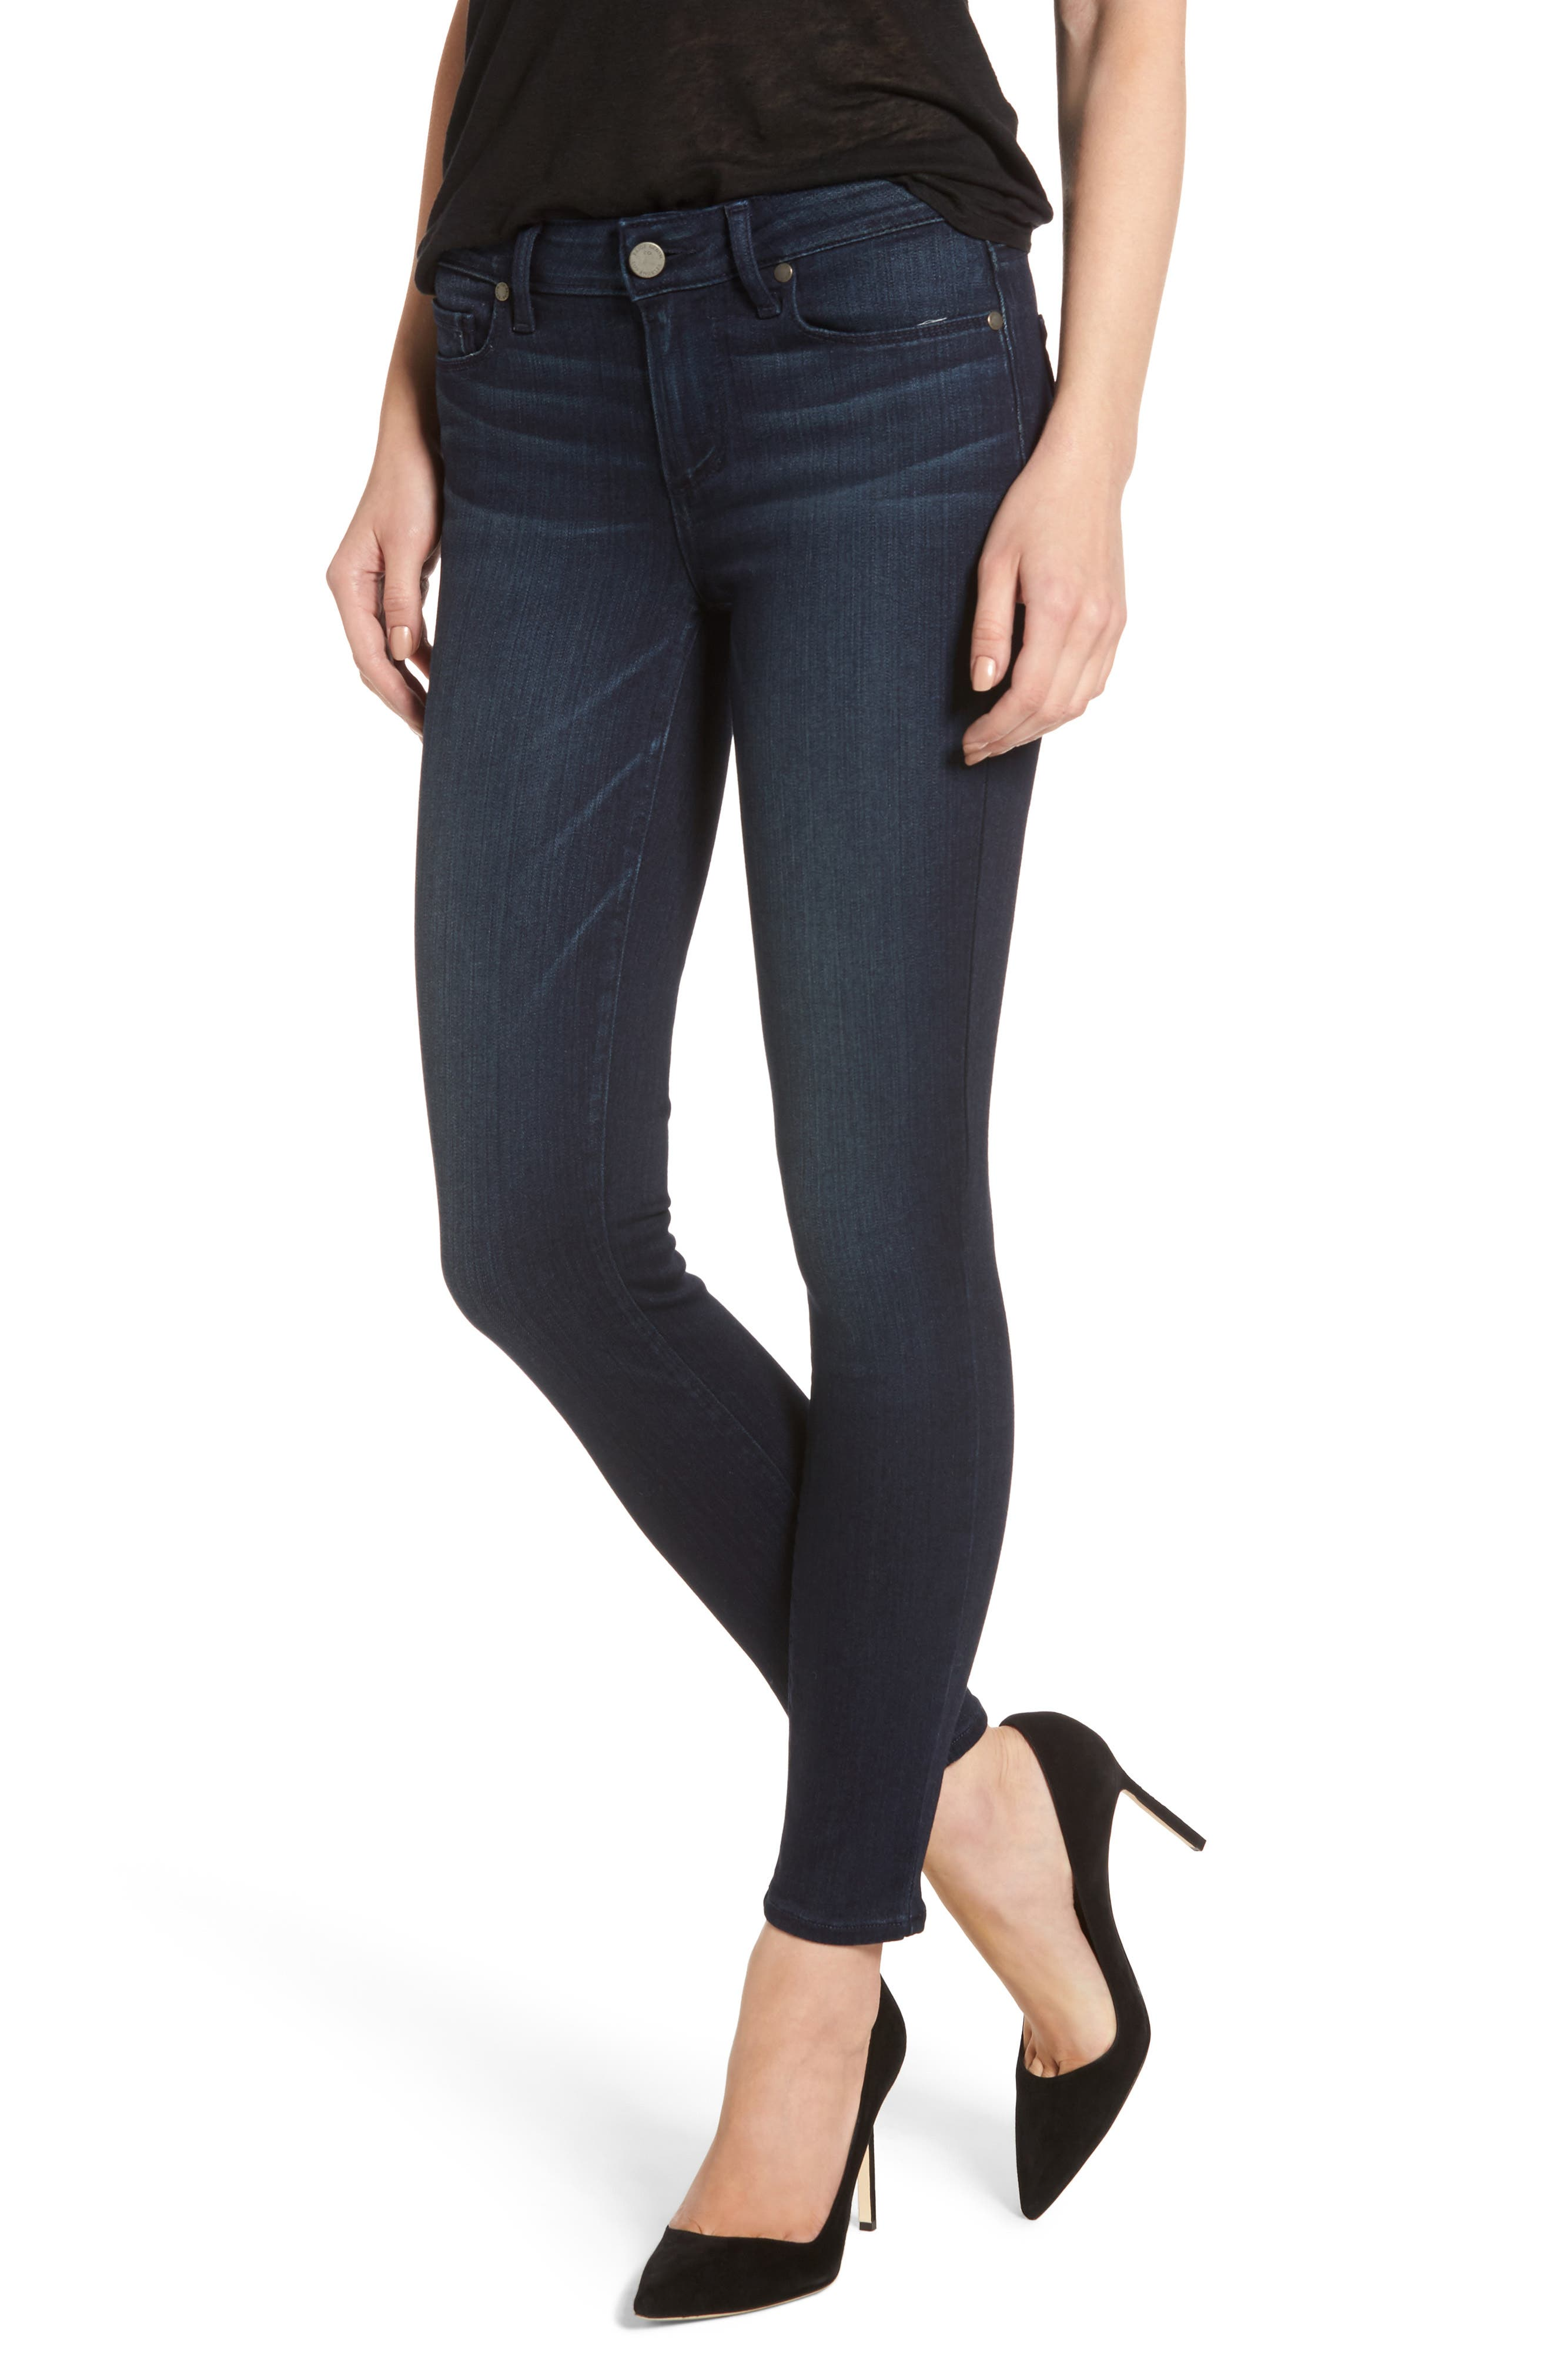 Women's Paige Transcend - Verdugo Ankle Skinny Jeans